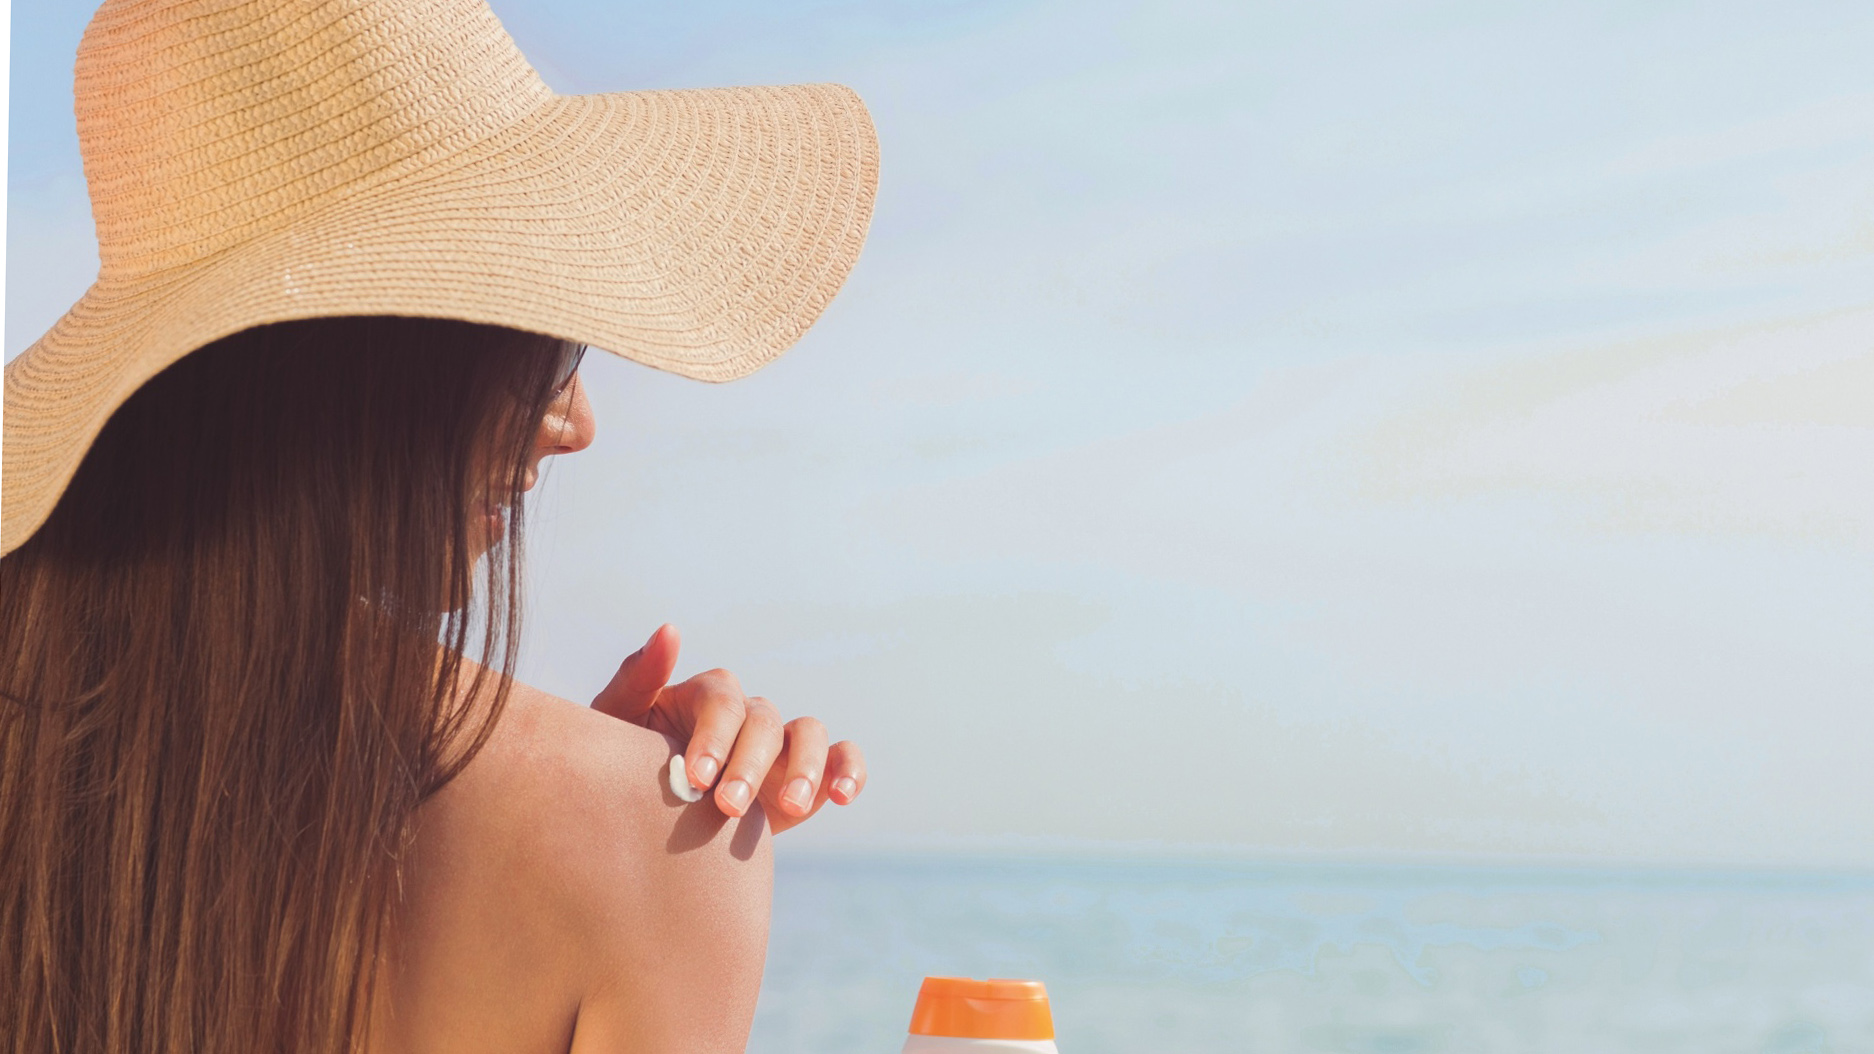 Applying sunscreen can prevent skin cancer.